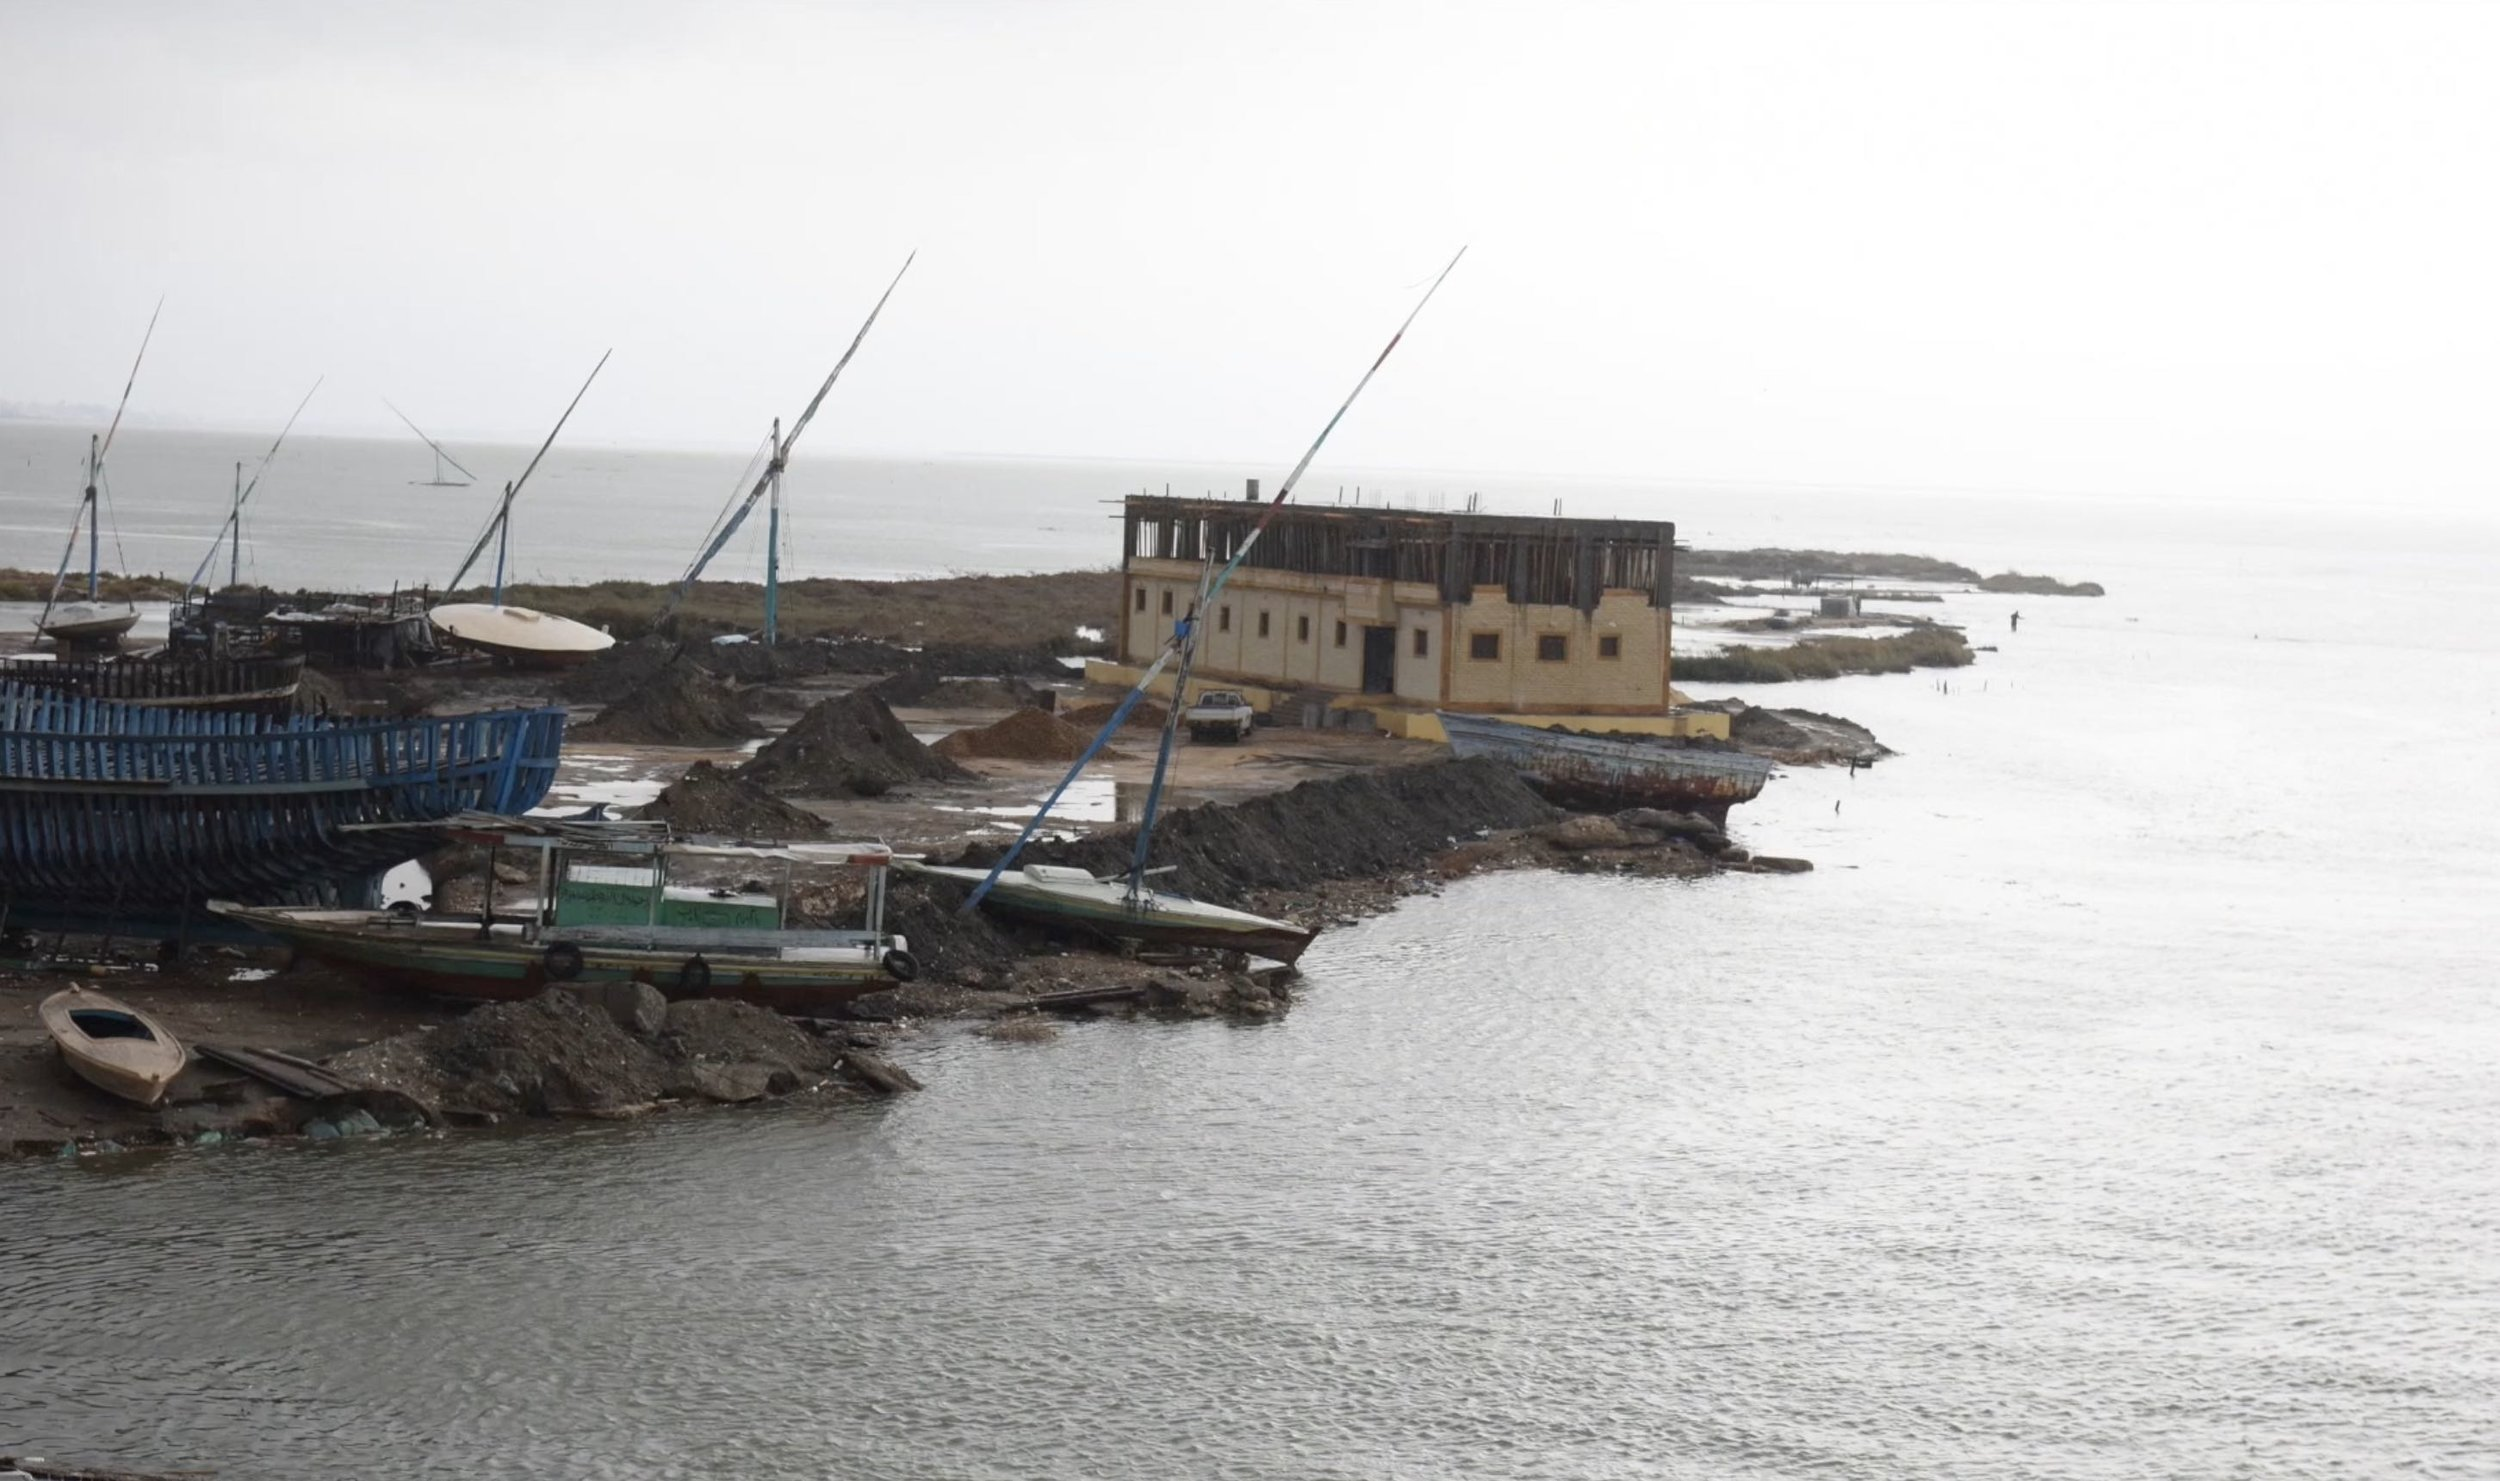 Extreme weather events and sea level rise also affects the lives of fishermen